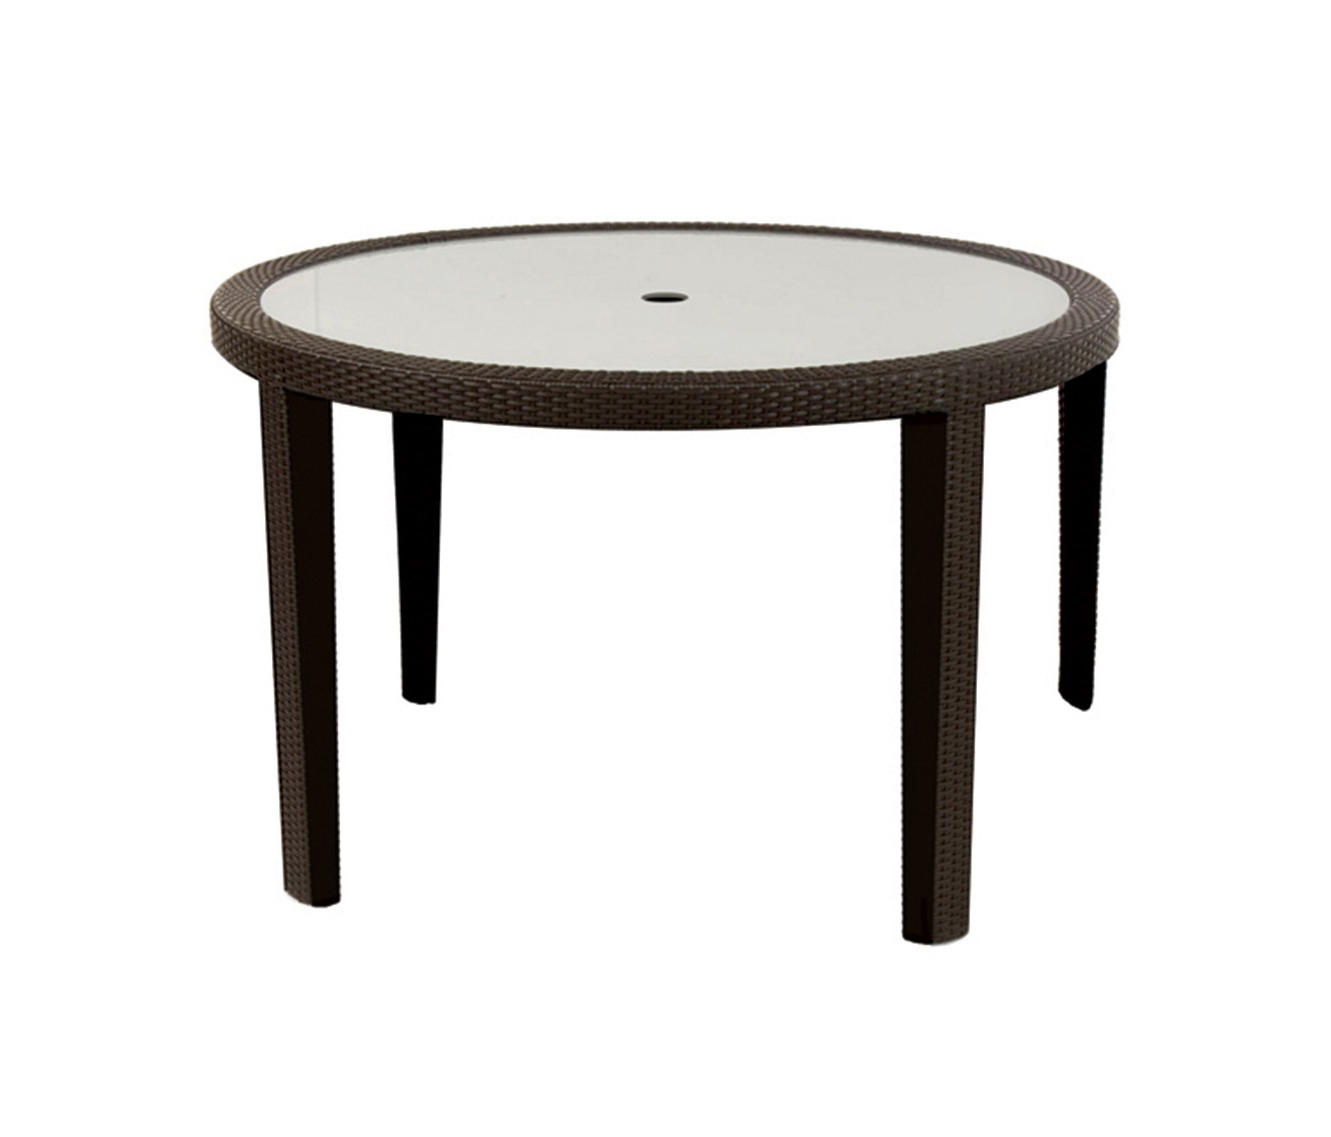 Seneca dining table with tempered glass top dining for Tempered glass dining table